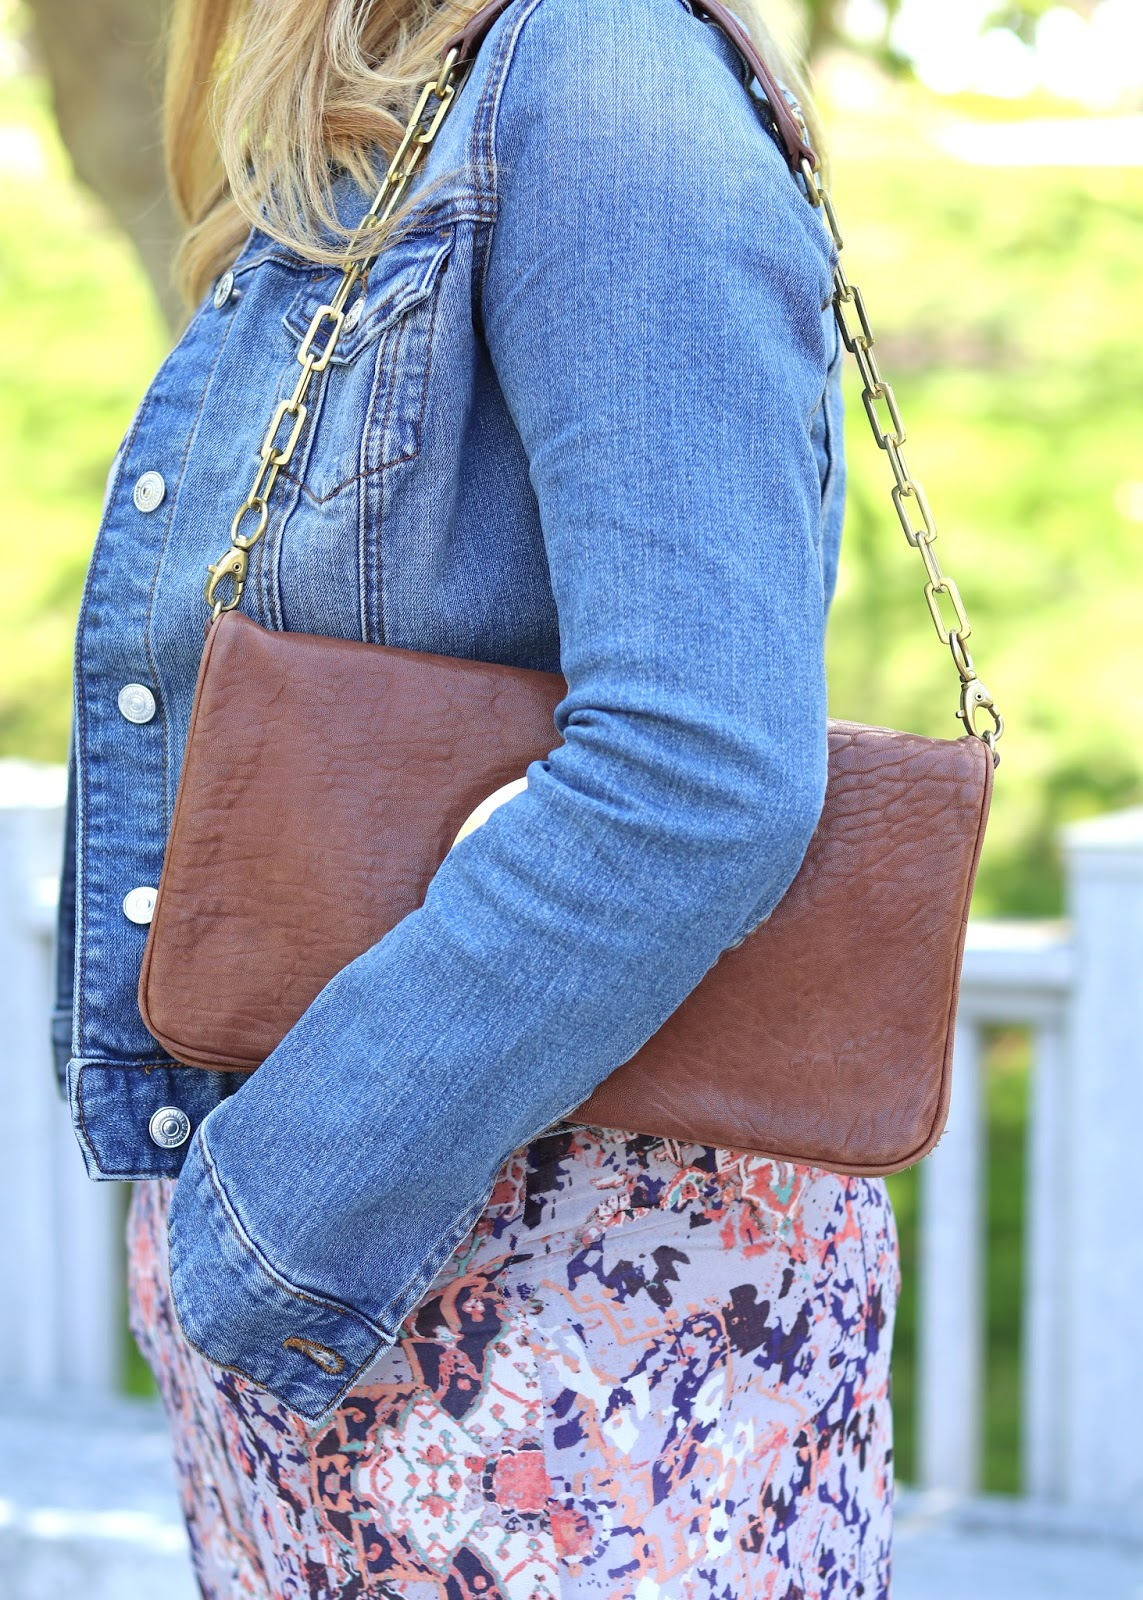 Tory Burch handbag, Tory Burch blogger, Jean Jacket and brown accessories, how to wear a brown bag, how to wear a tory burch bag